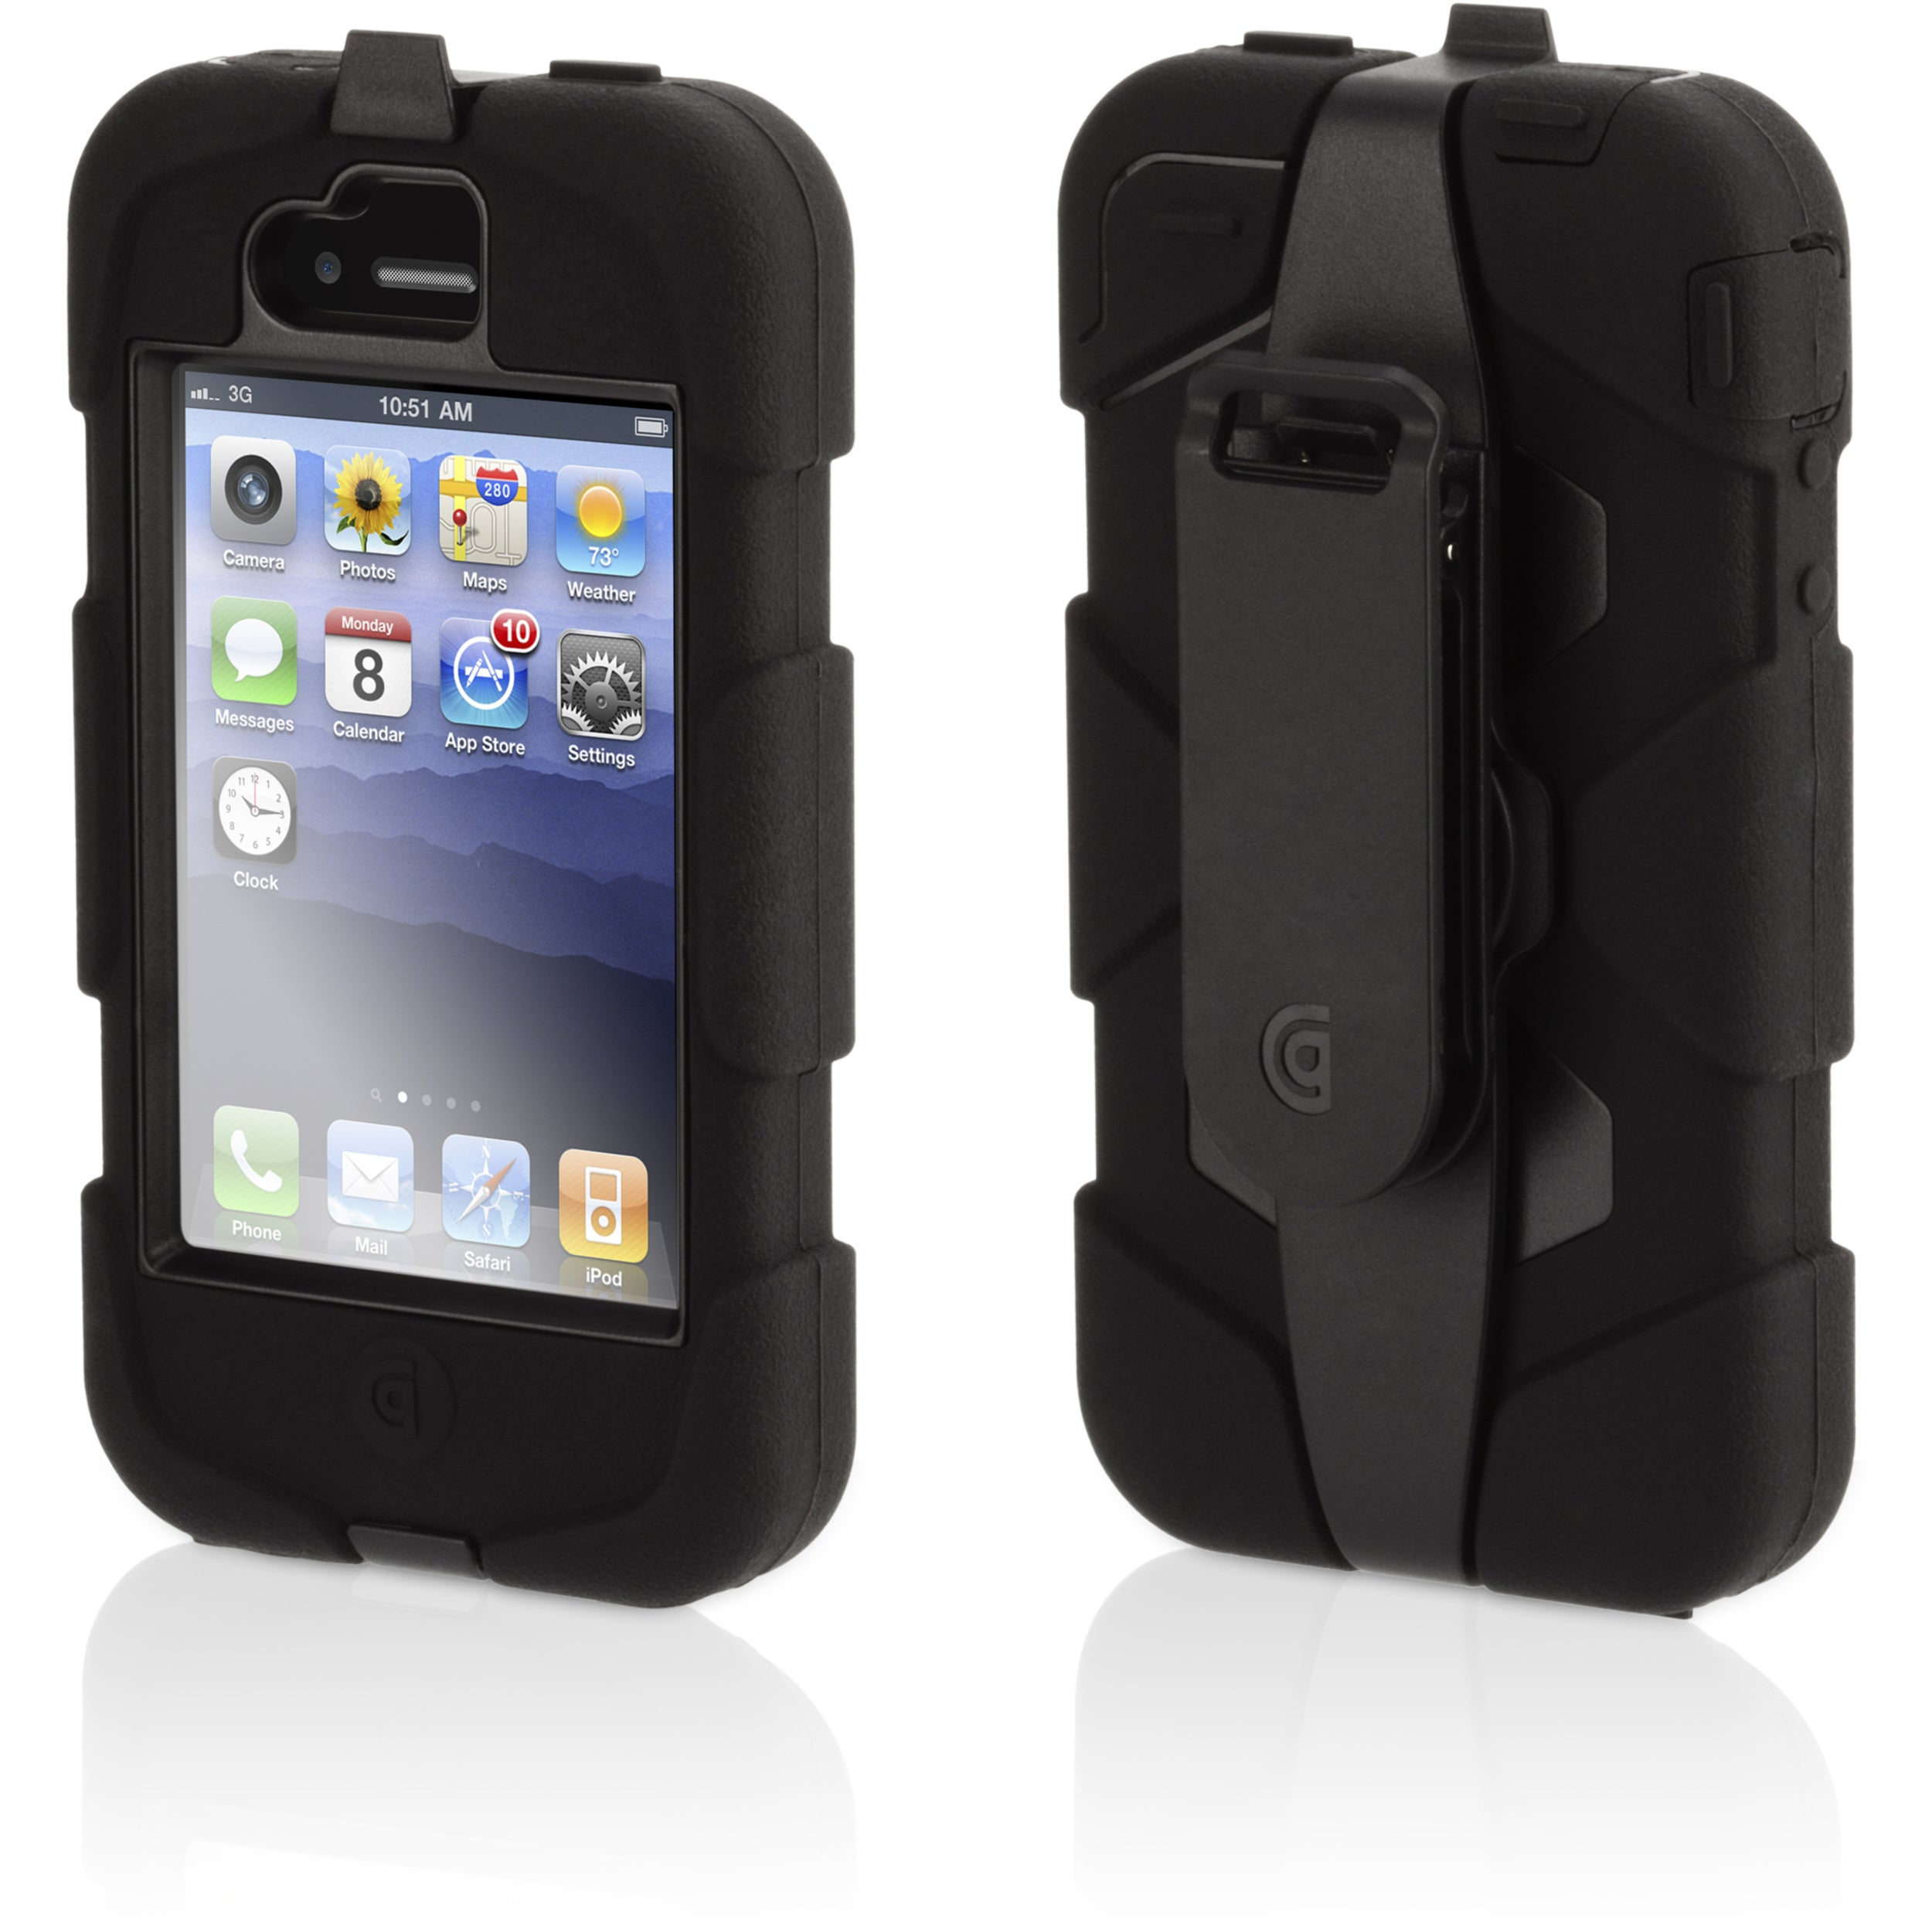 Griffin Survivor GB01902 Carrying Case for iPhone - Black - Thumbnail 0